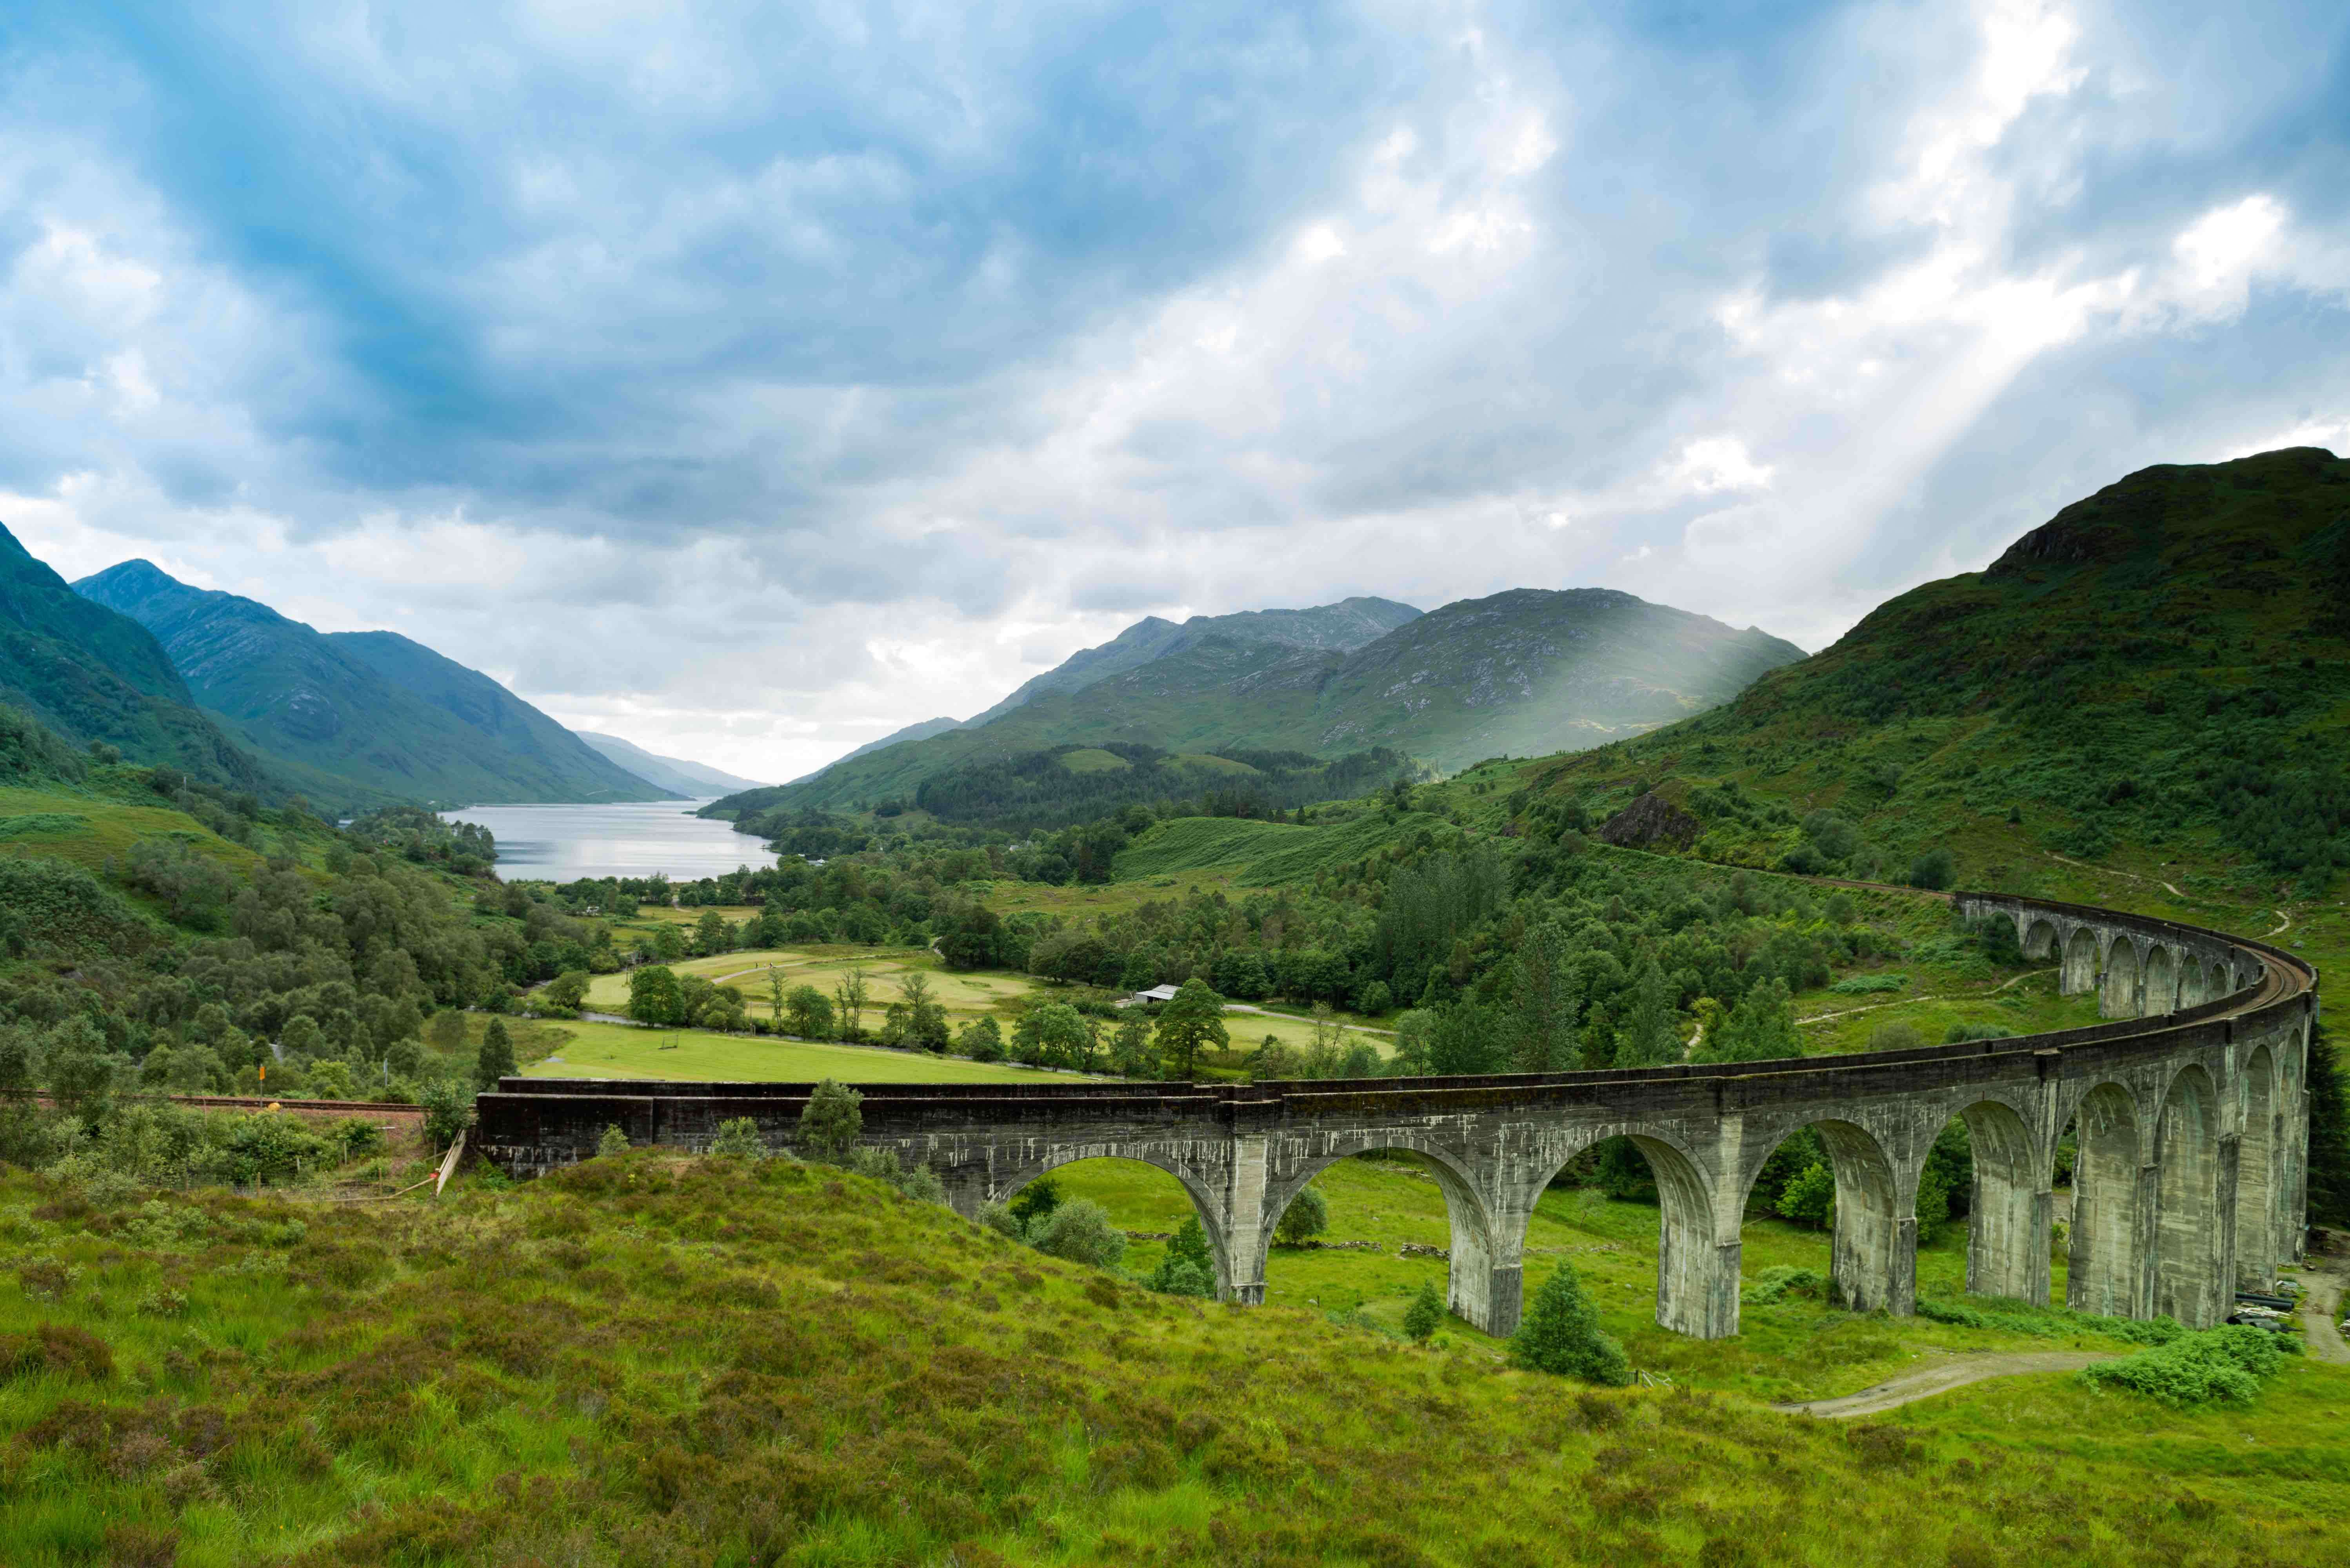 The 21 arches of Scotland's Glenfinnan Viaduct.